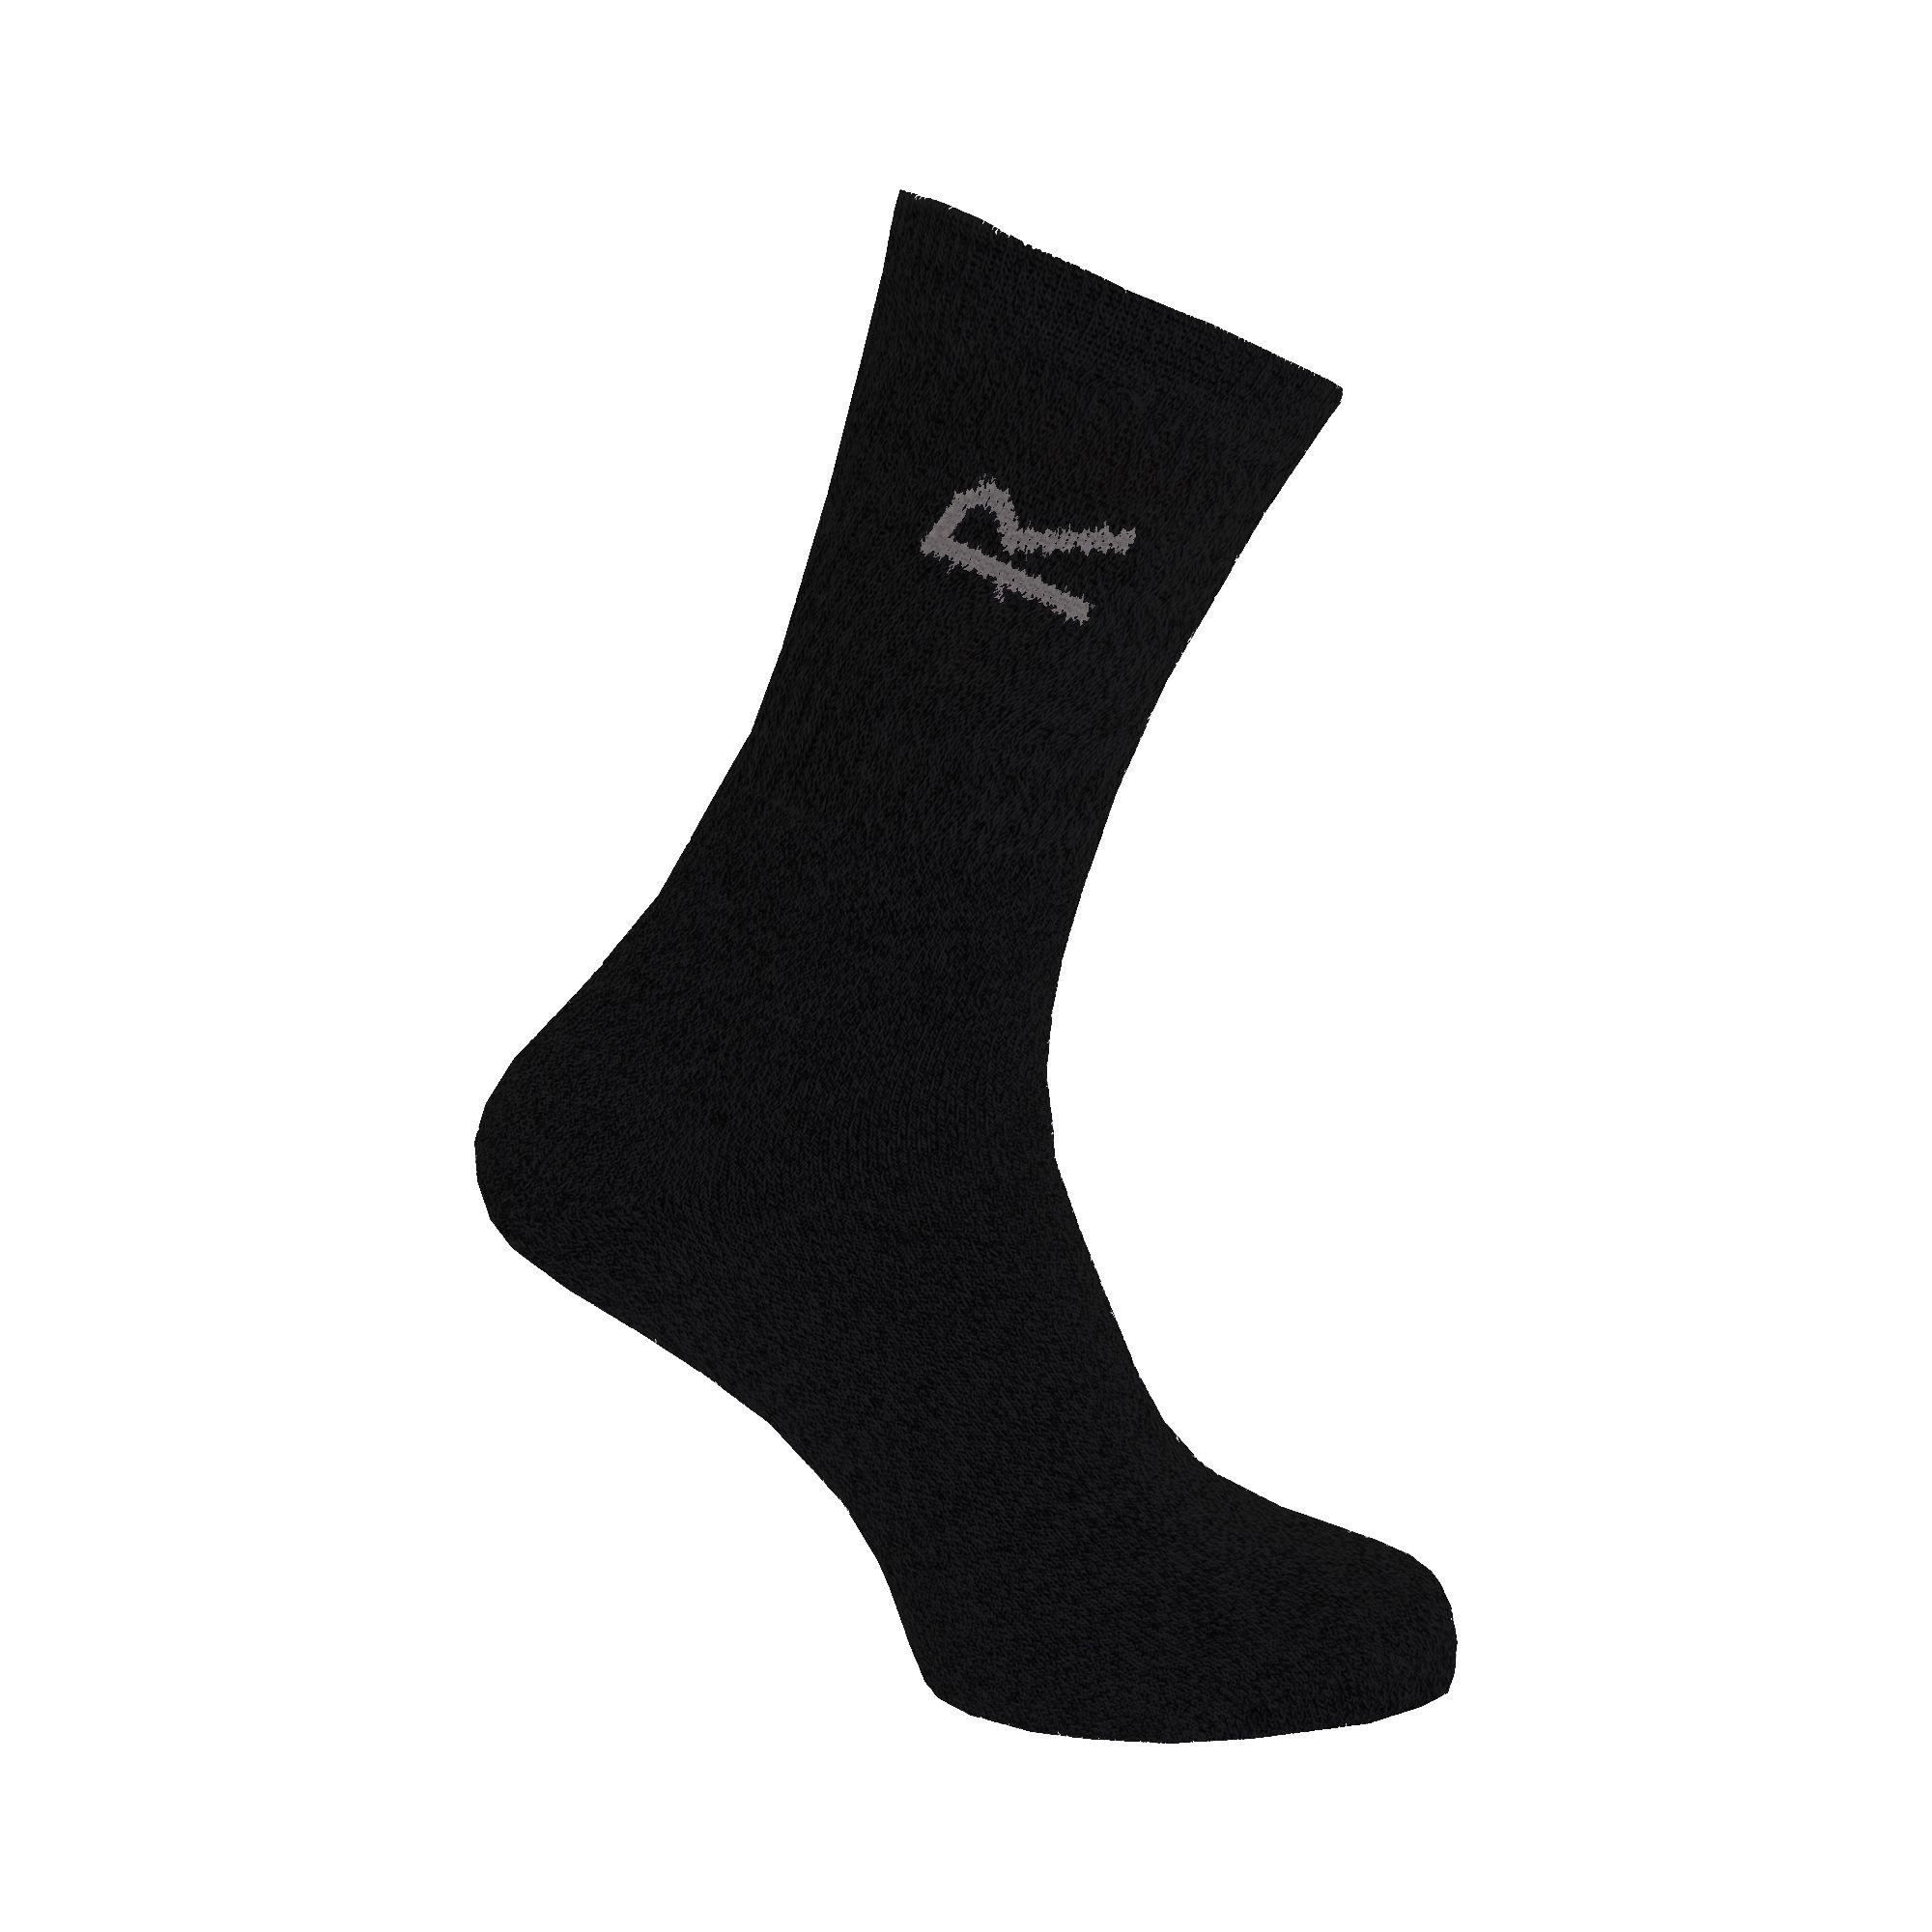 Regatta Great Outdoors Mens Cotton Rich Casual Socks (Pack Of 3)